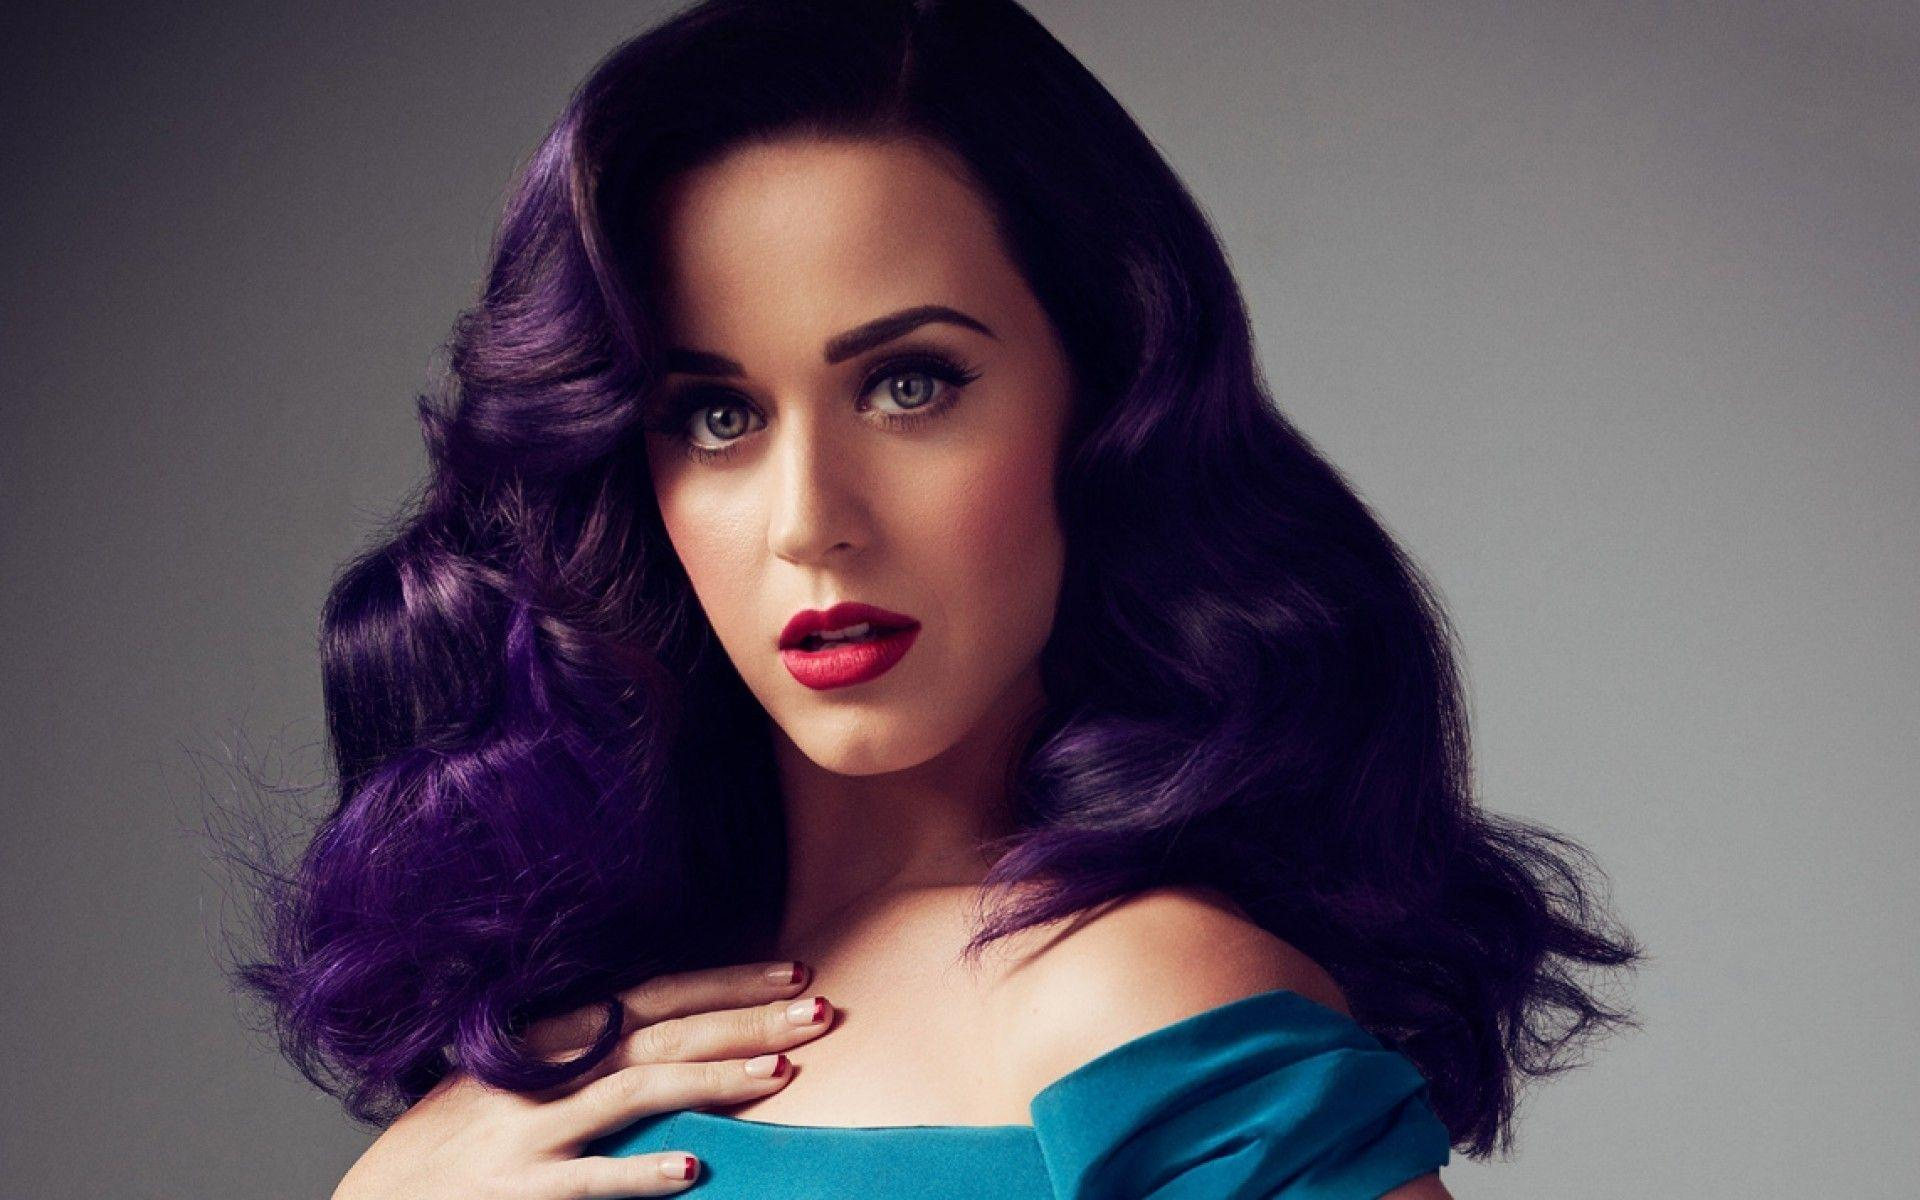 katy perry hd wallpapers - wallpaper cave